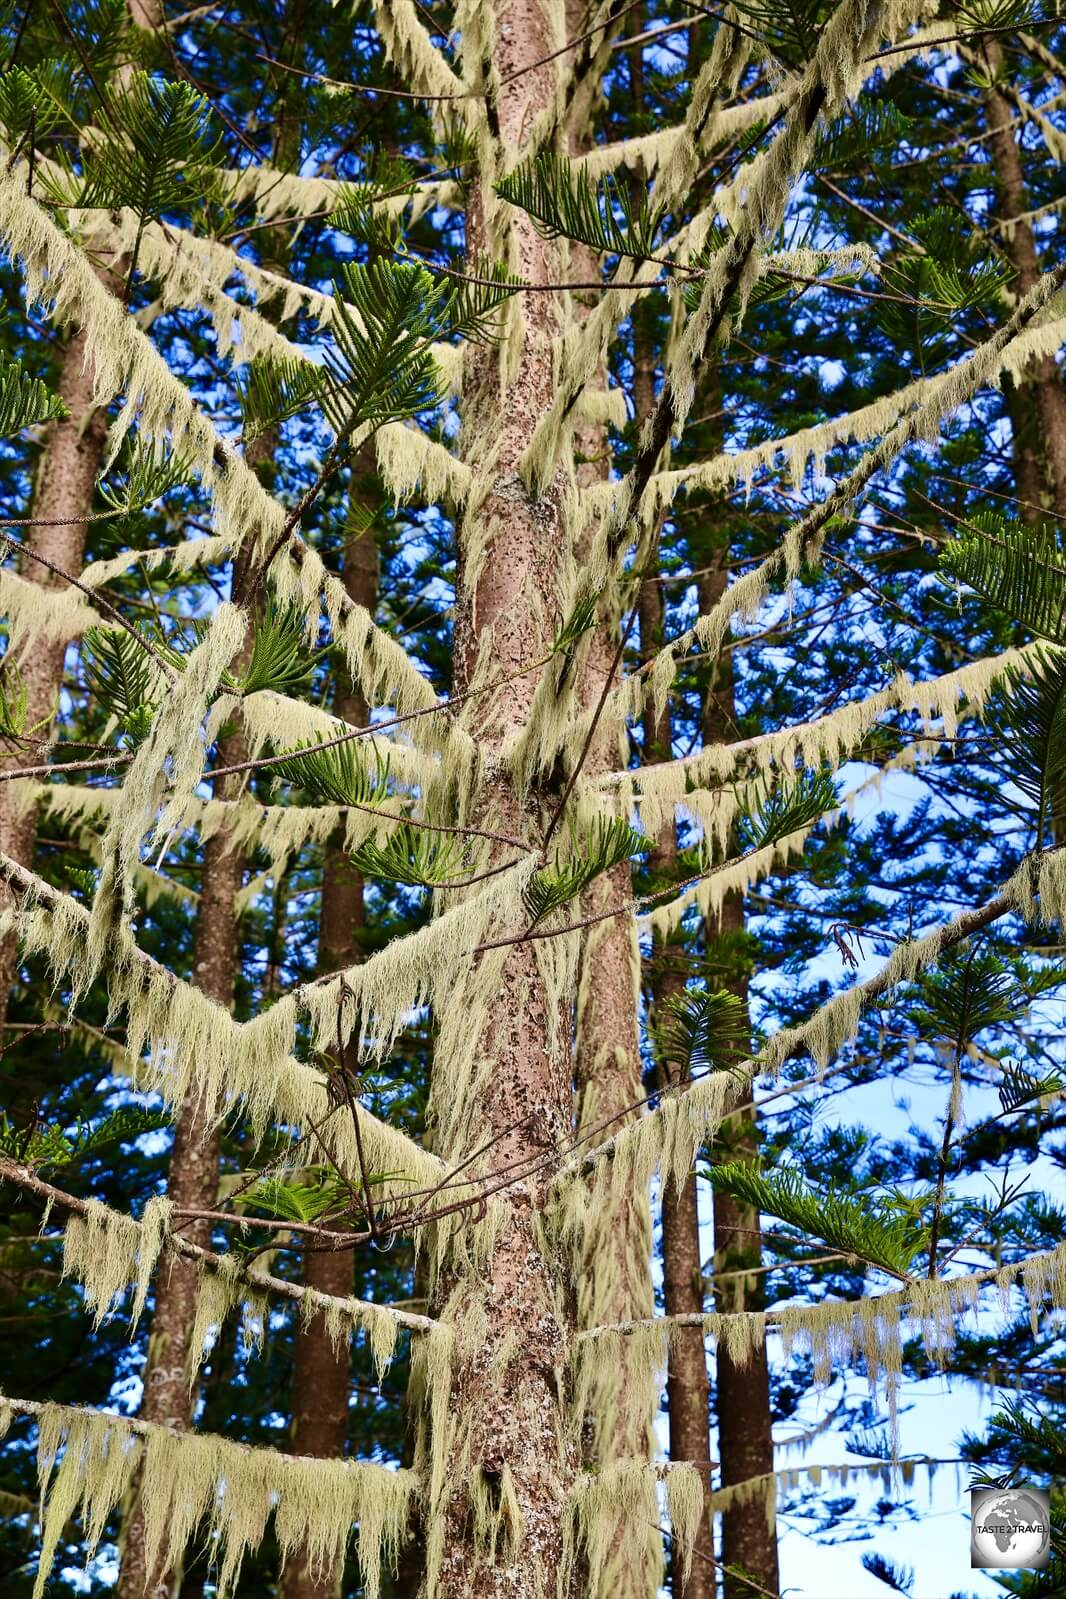 A Norfolk Island pine festooned with lichen Usnea.